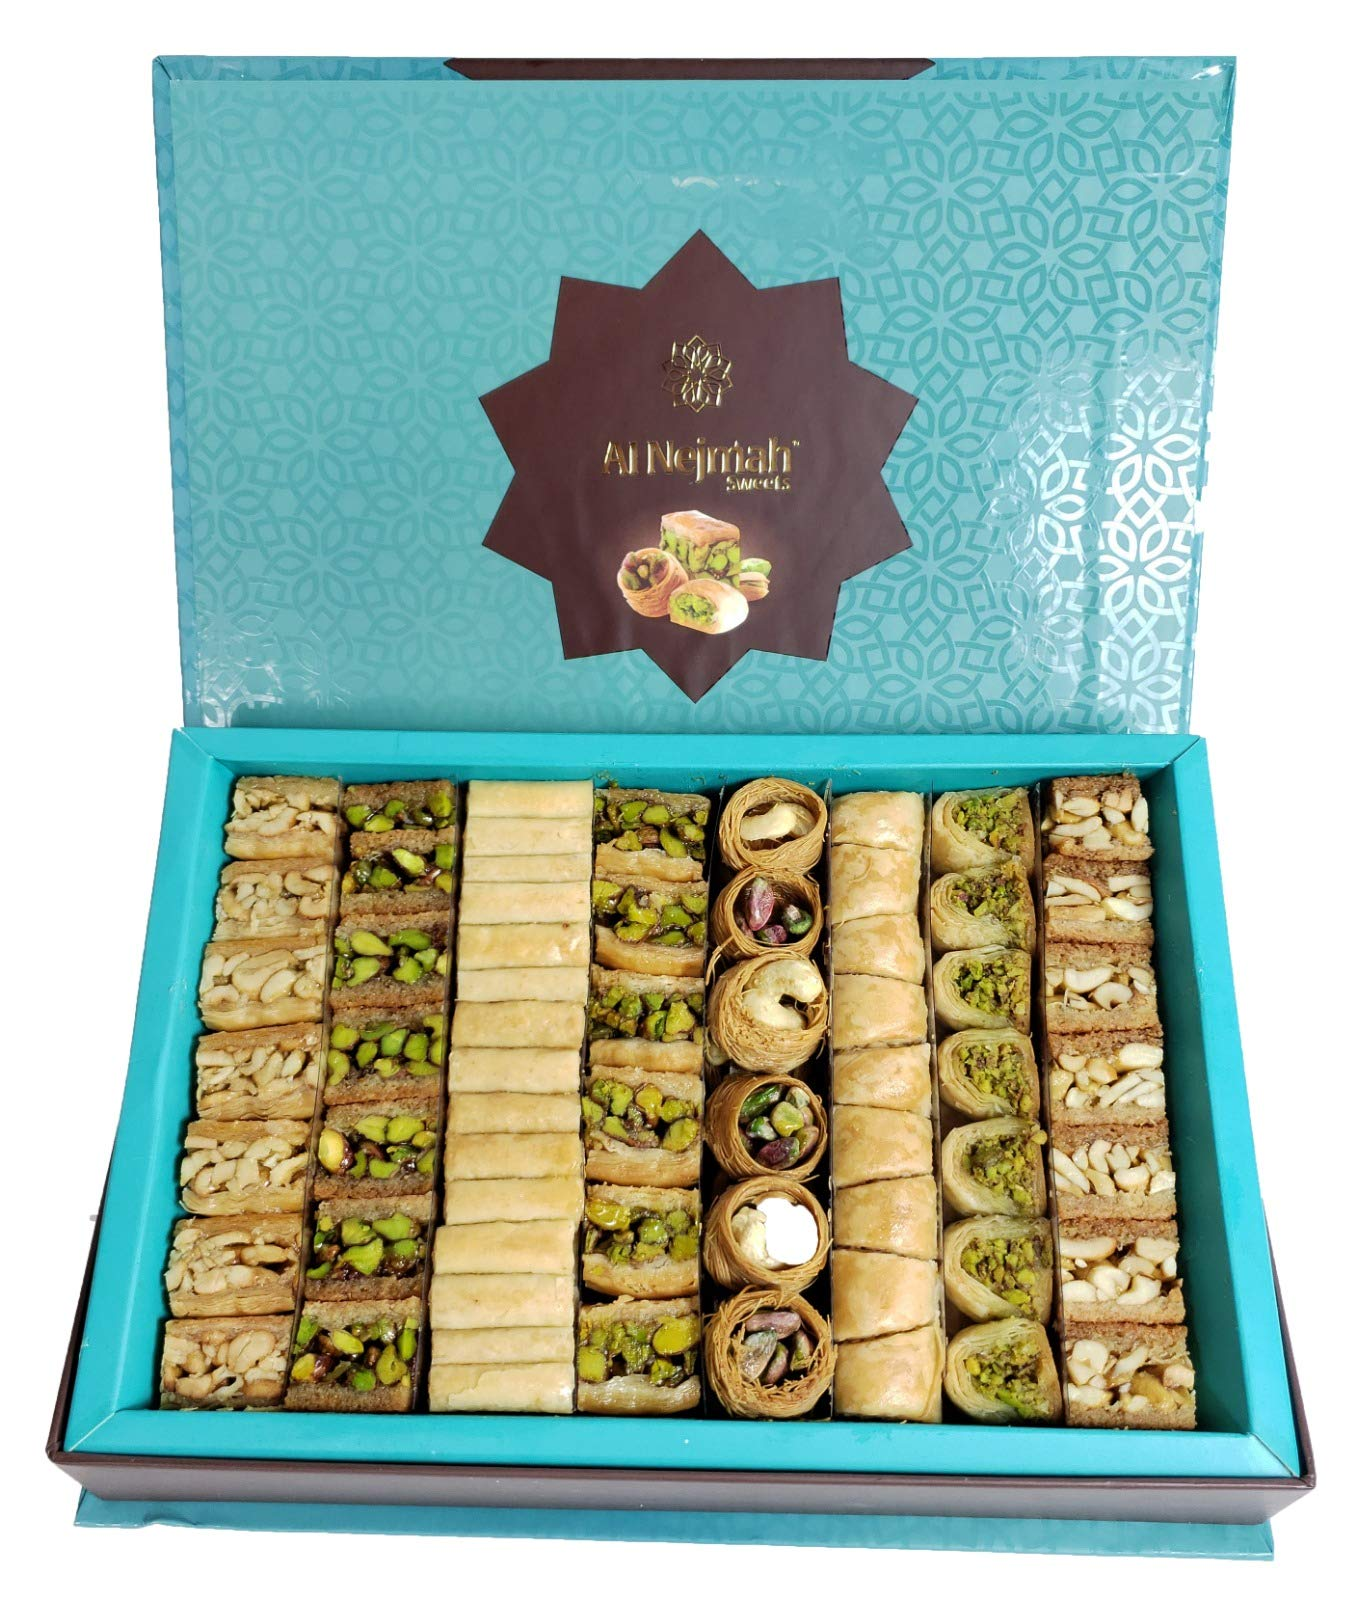 PT112 - Baklava Nuts Assorted (105-110 Pieces) (36 Oz Net, 3 lbs Gross, 12 inches x 8 inches x 2 inches) (Oglu) - Baklava Pastry Sweets in Very Classy Gift Box (Mix Baklava Nuts, 36 Oz Net, PT112)